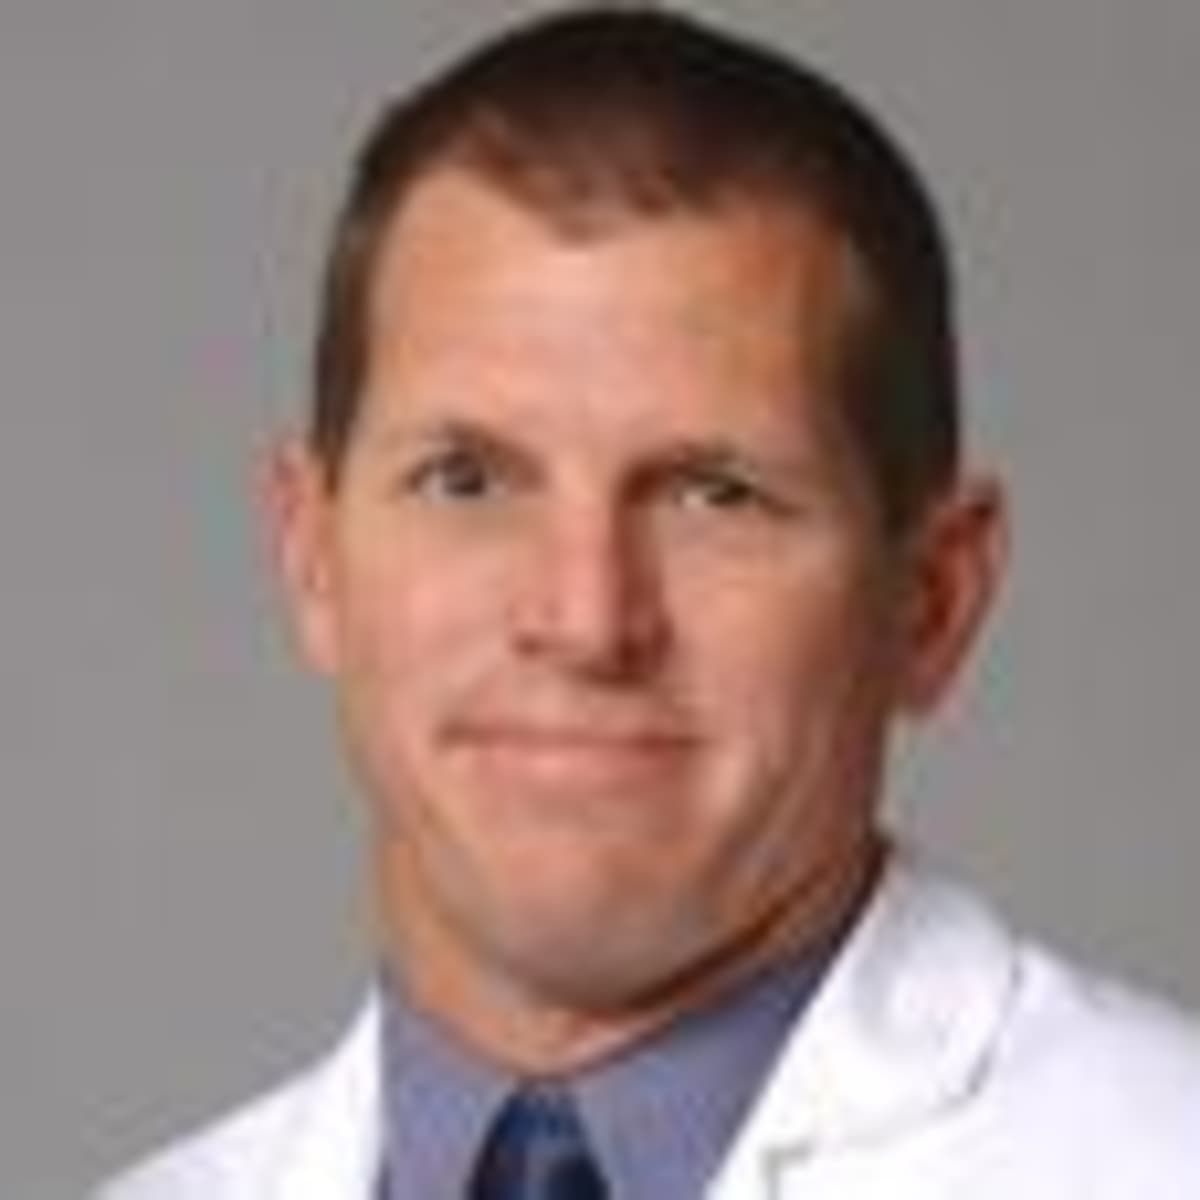 Video Dr James Lyons Md San Diego Ca Osteopathic